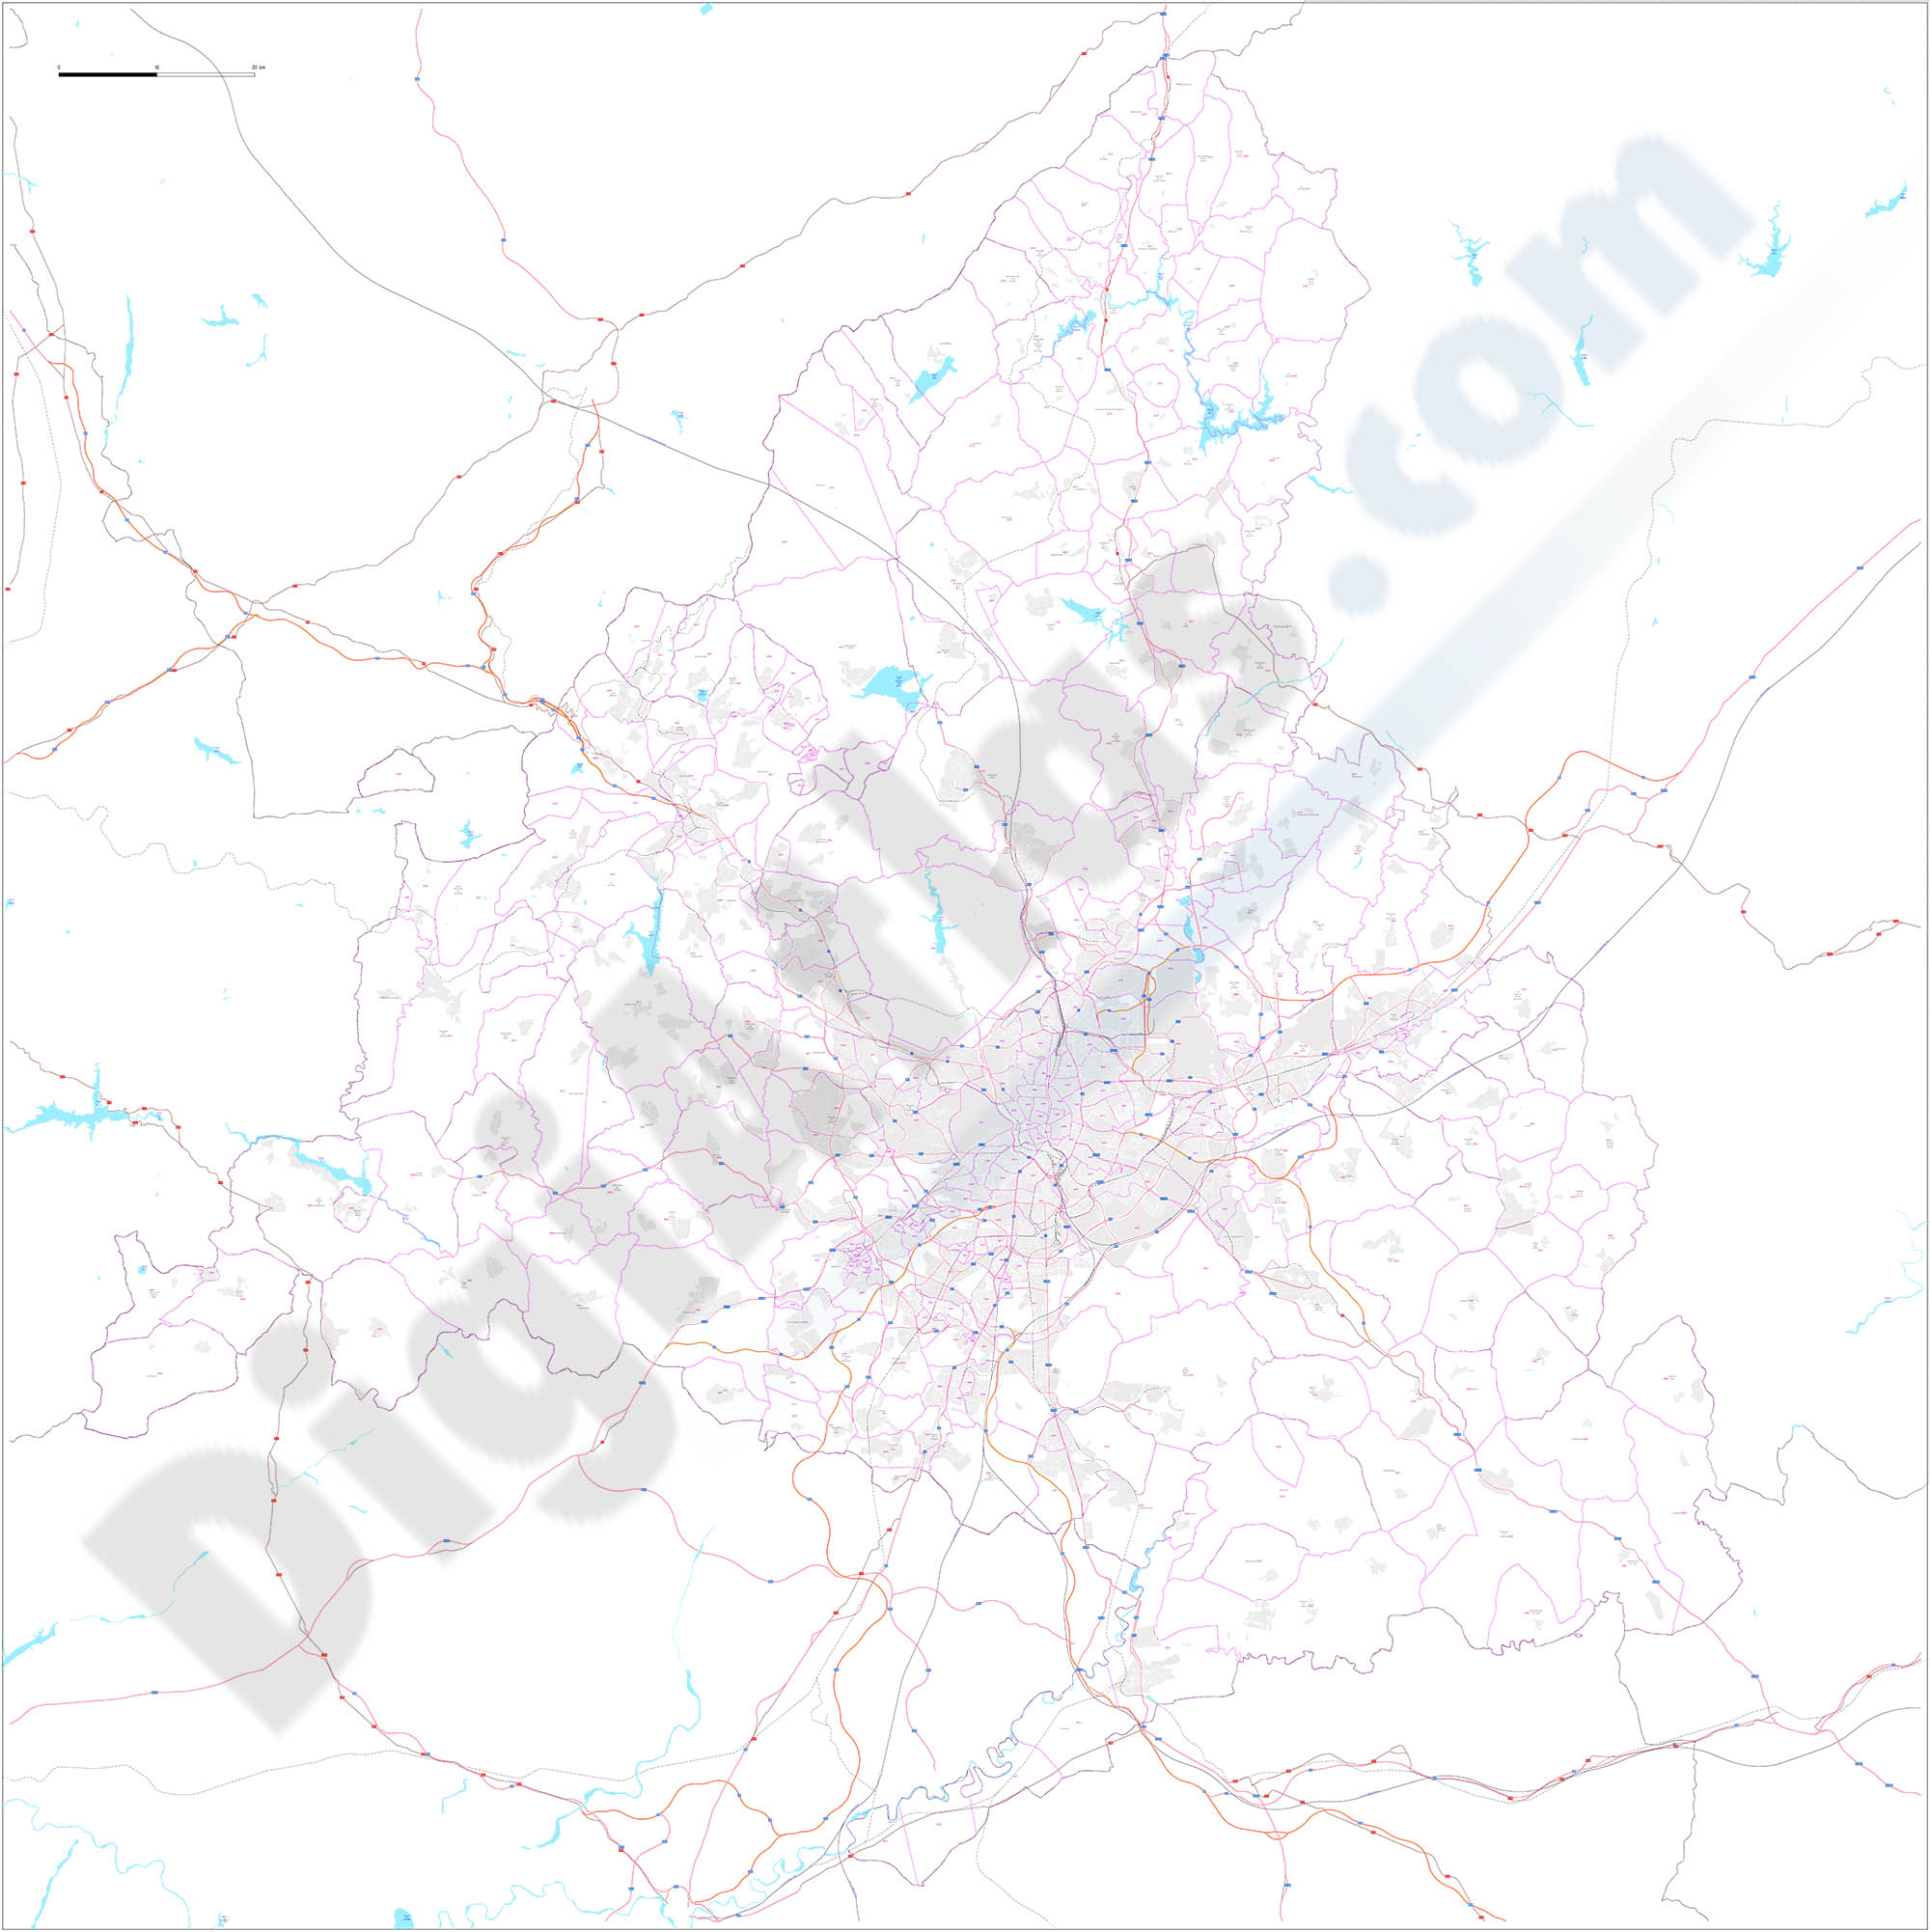 Community of Madrid - Digital map with municipalities and postal codes